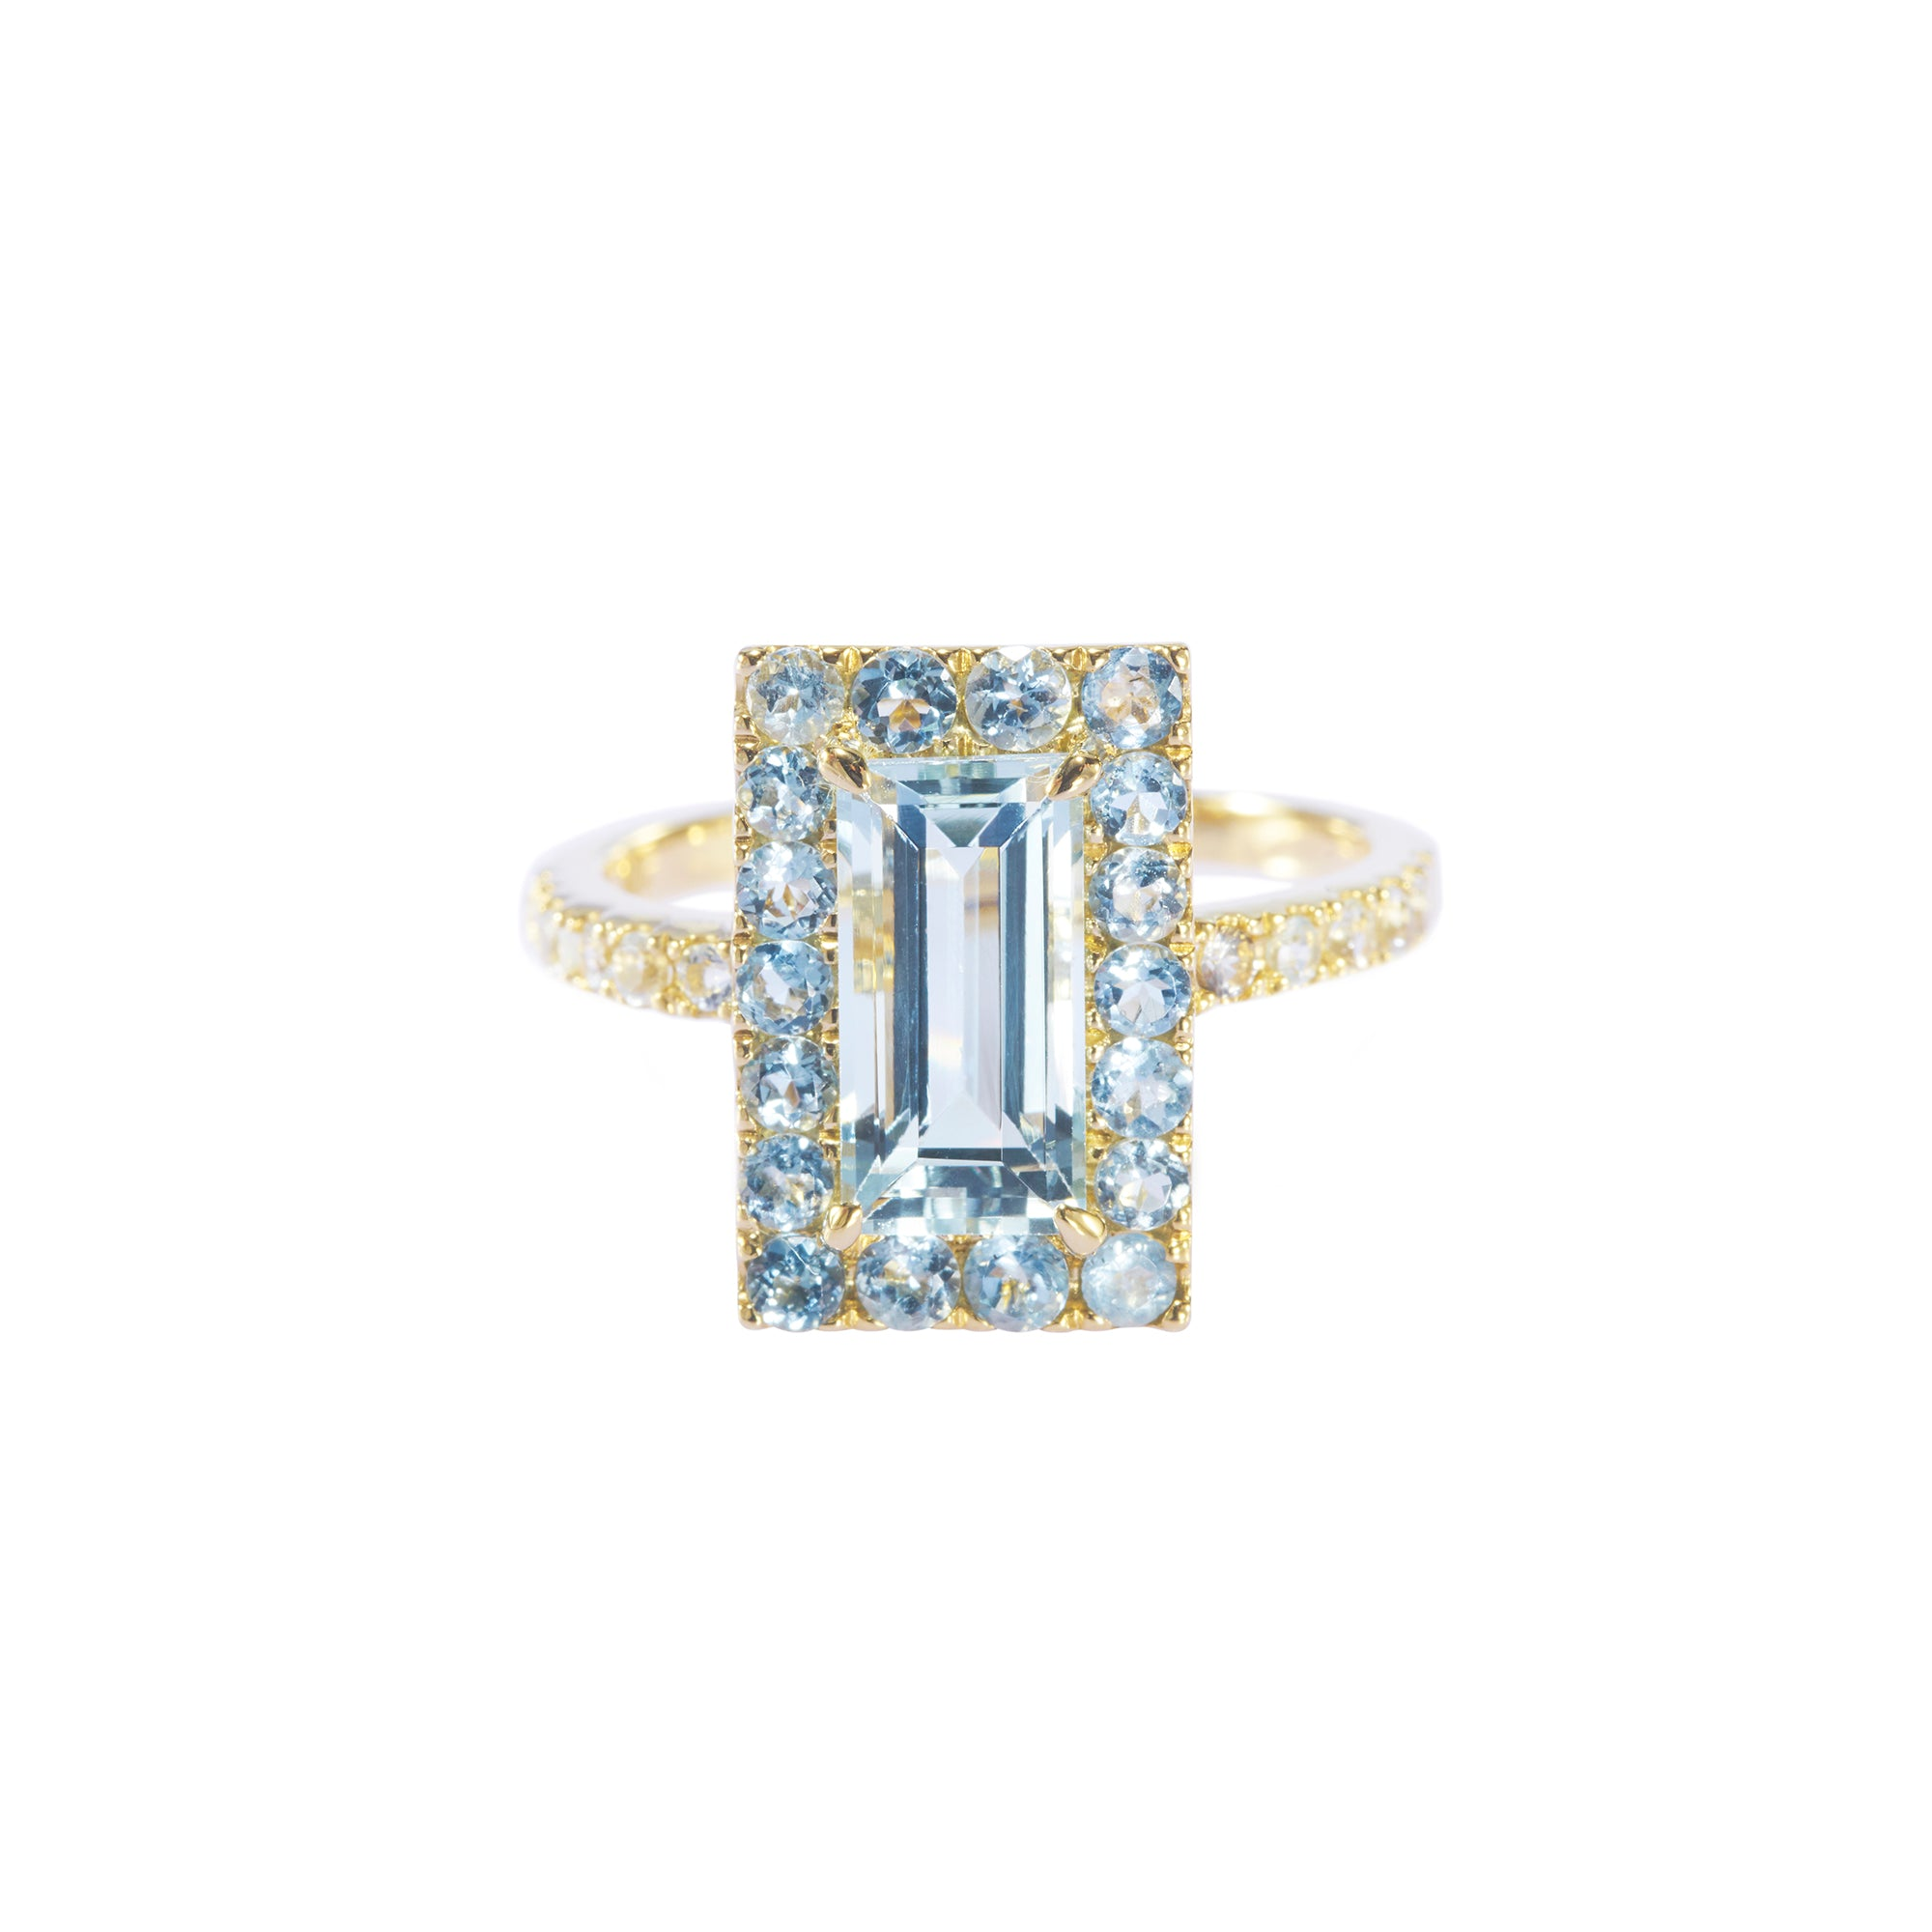 Aquamarine Tonal Deco Ring - YI Collection - Rings | Broken English Jewelry